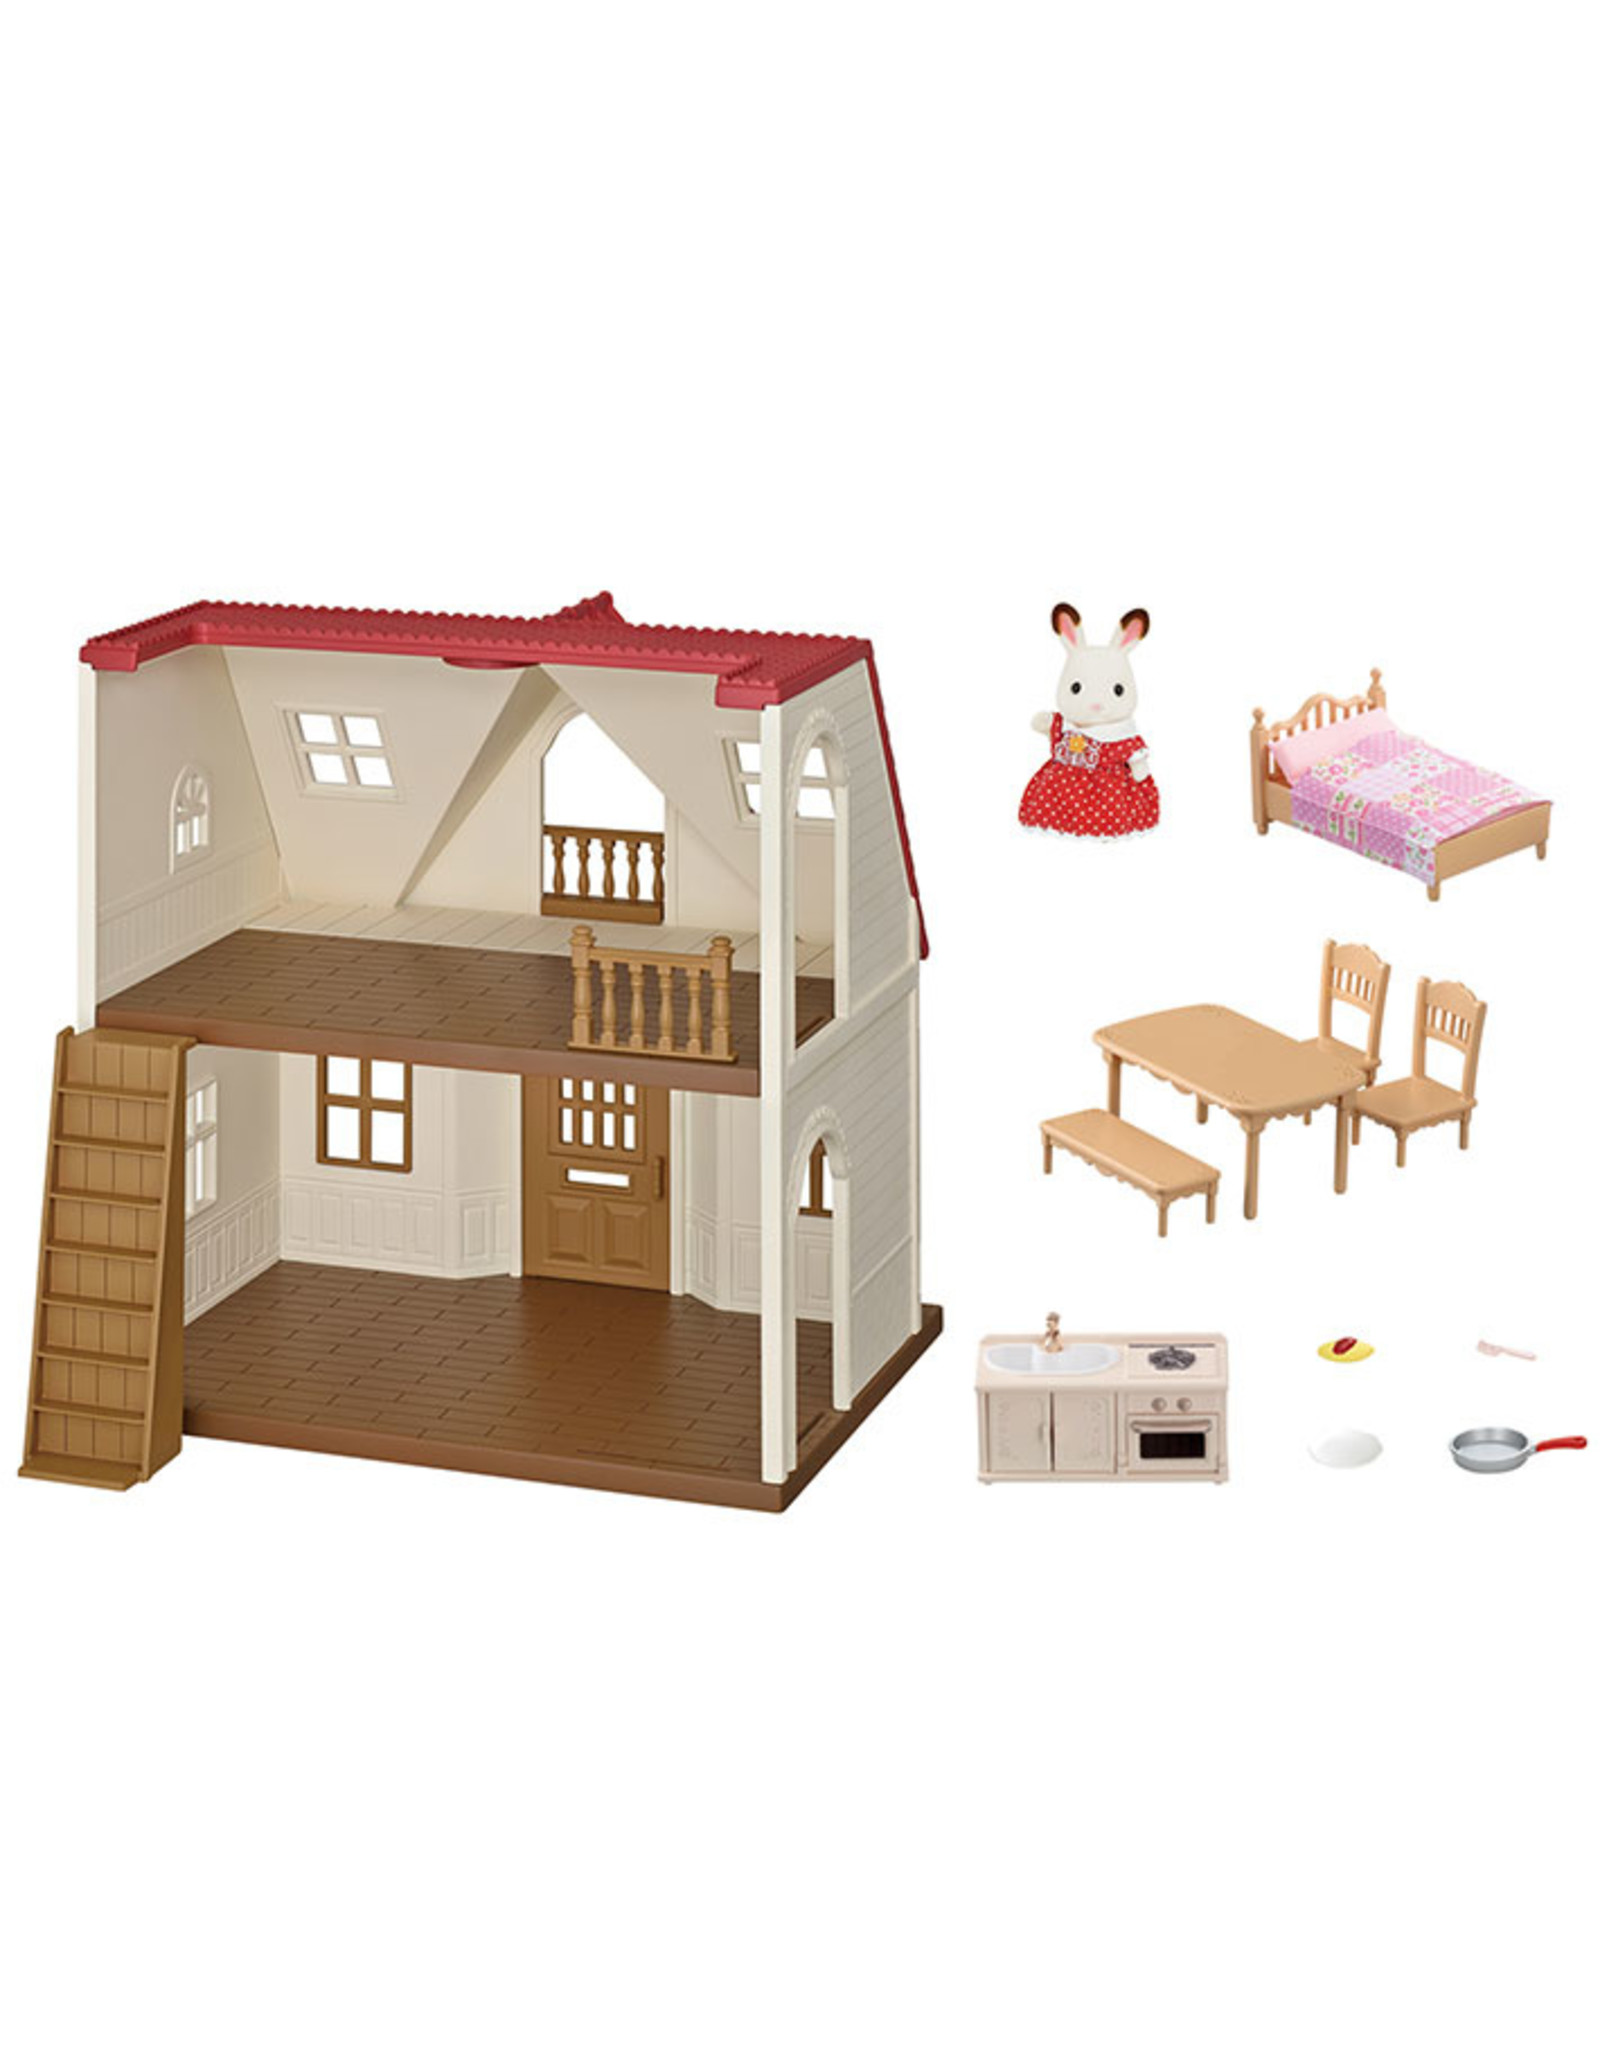 Calico Critters Calico Critters Red Roof Cozy Cottage